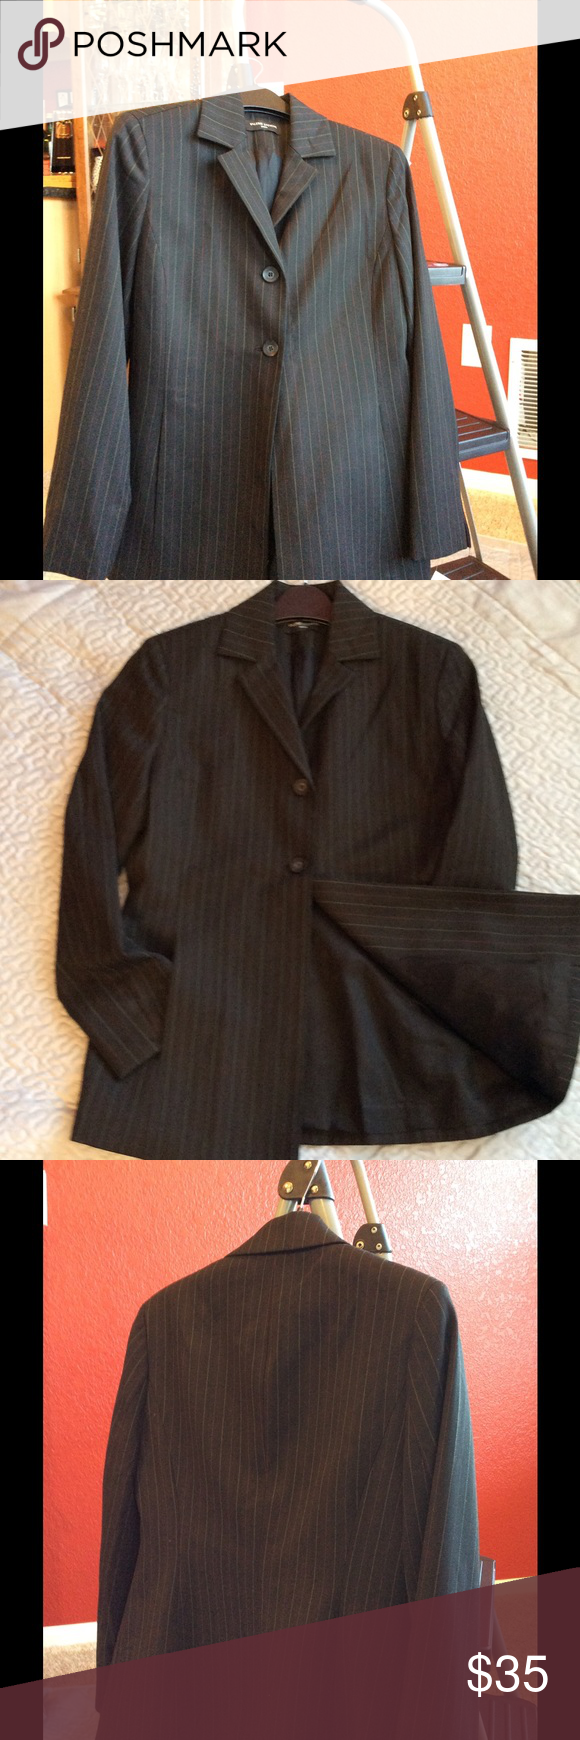 Size 4p Valerie Stevens blazer. Just marked down Valarie Stevens black with thin tan and red stripes.  New with tags. Two button with side pockets. 49% polyester 49% viscose 2% elasthane. RN13711. Valerie Stevens Jackets & Coats Blazers